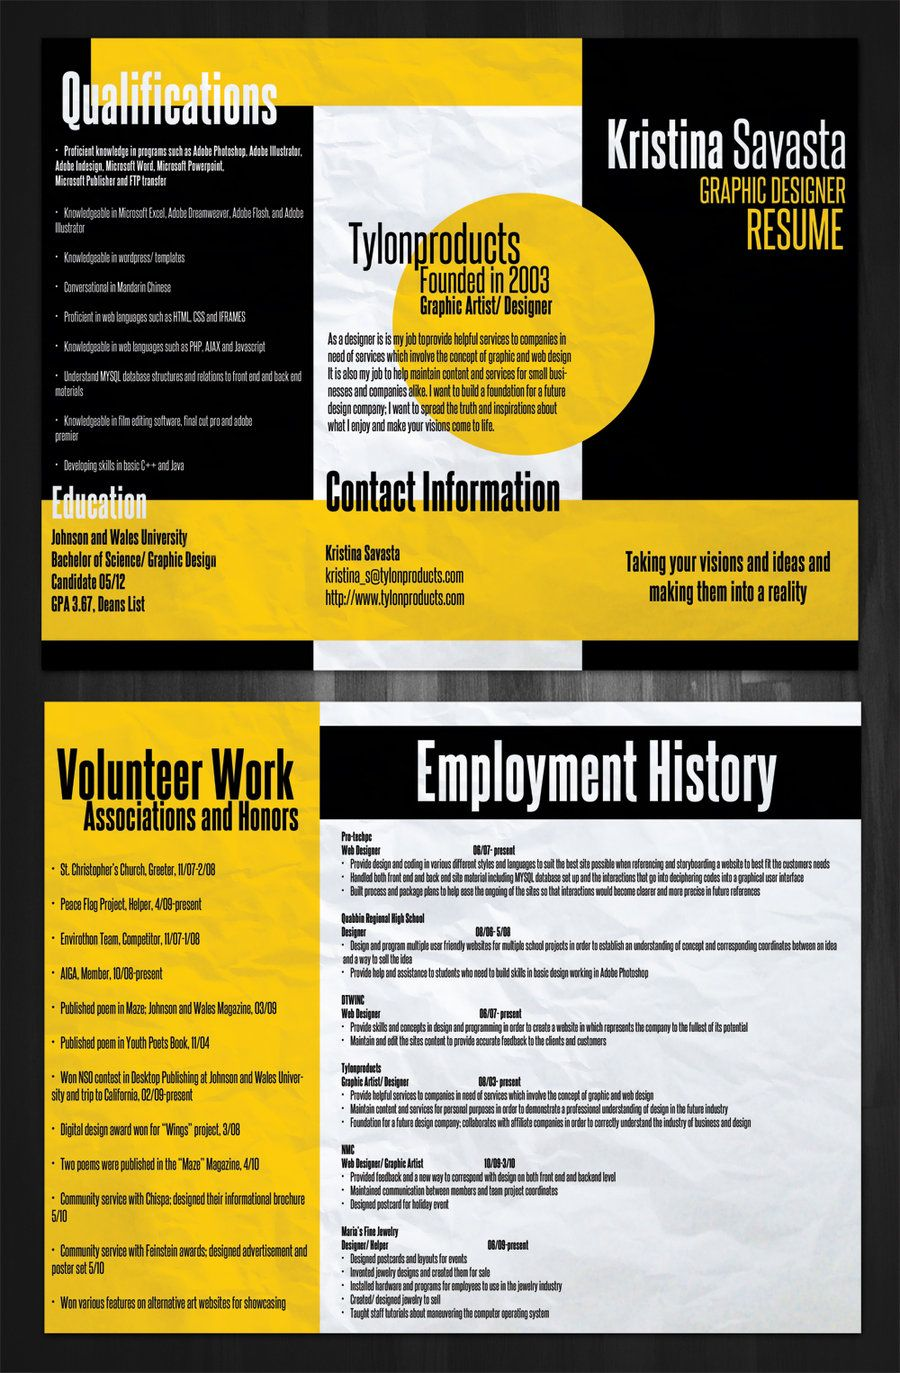 Creative Resume Design Samples That Will Make You Rethink Your